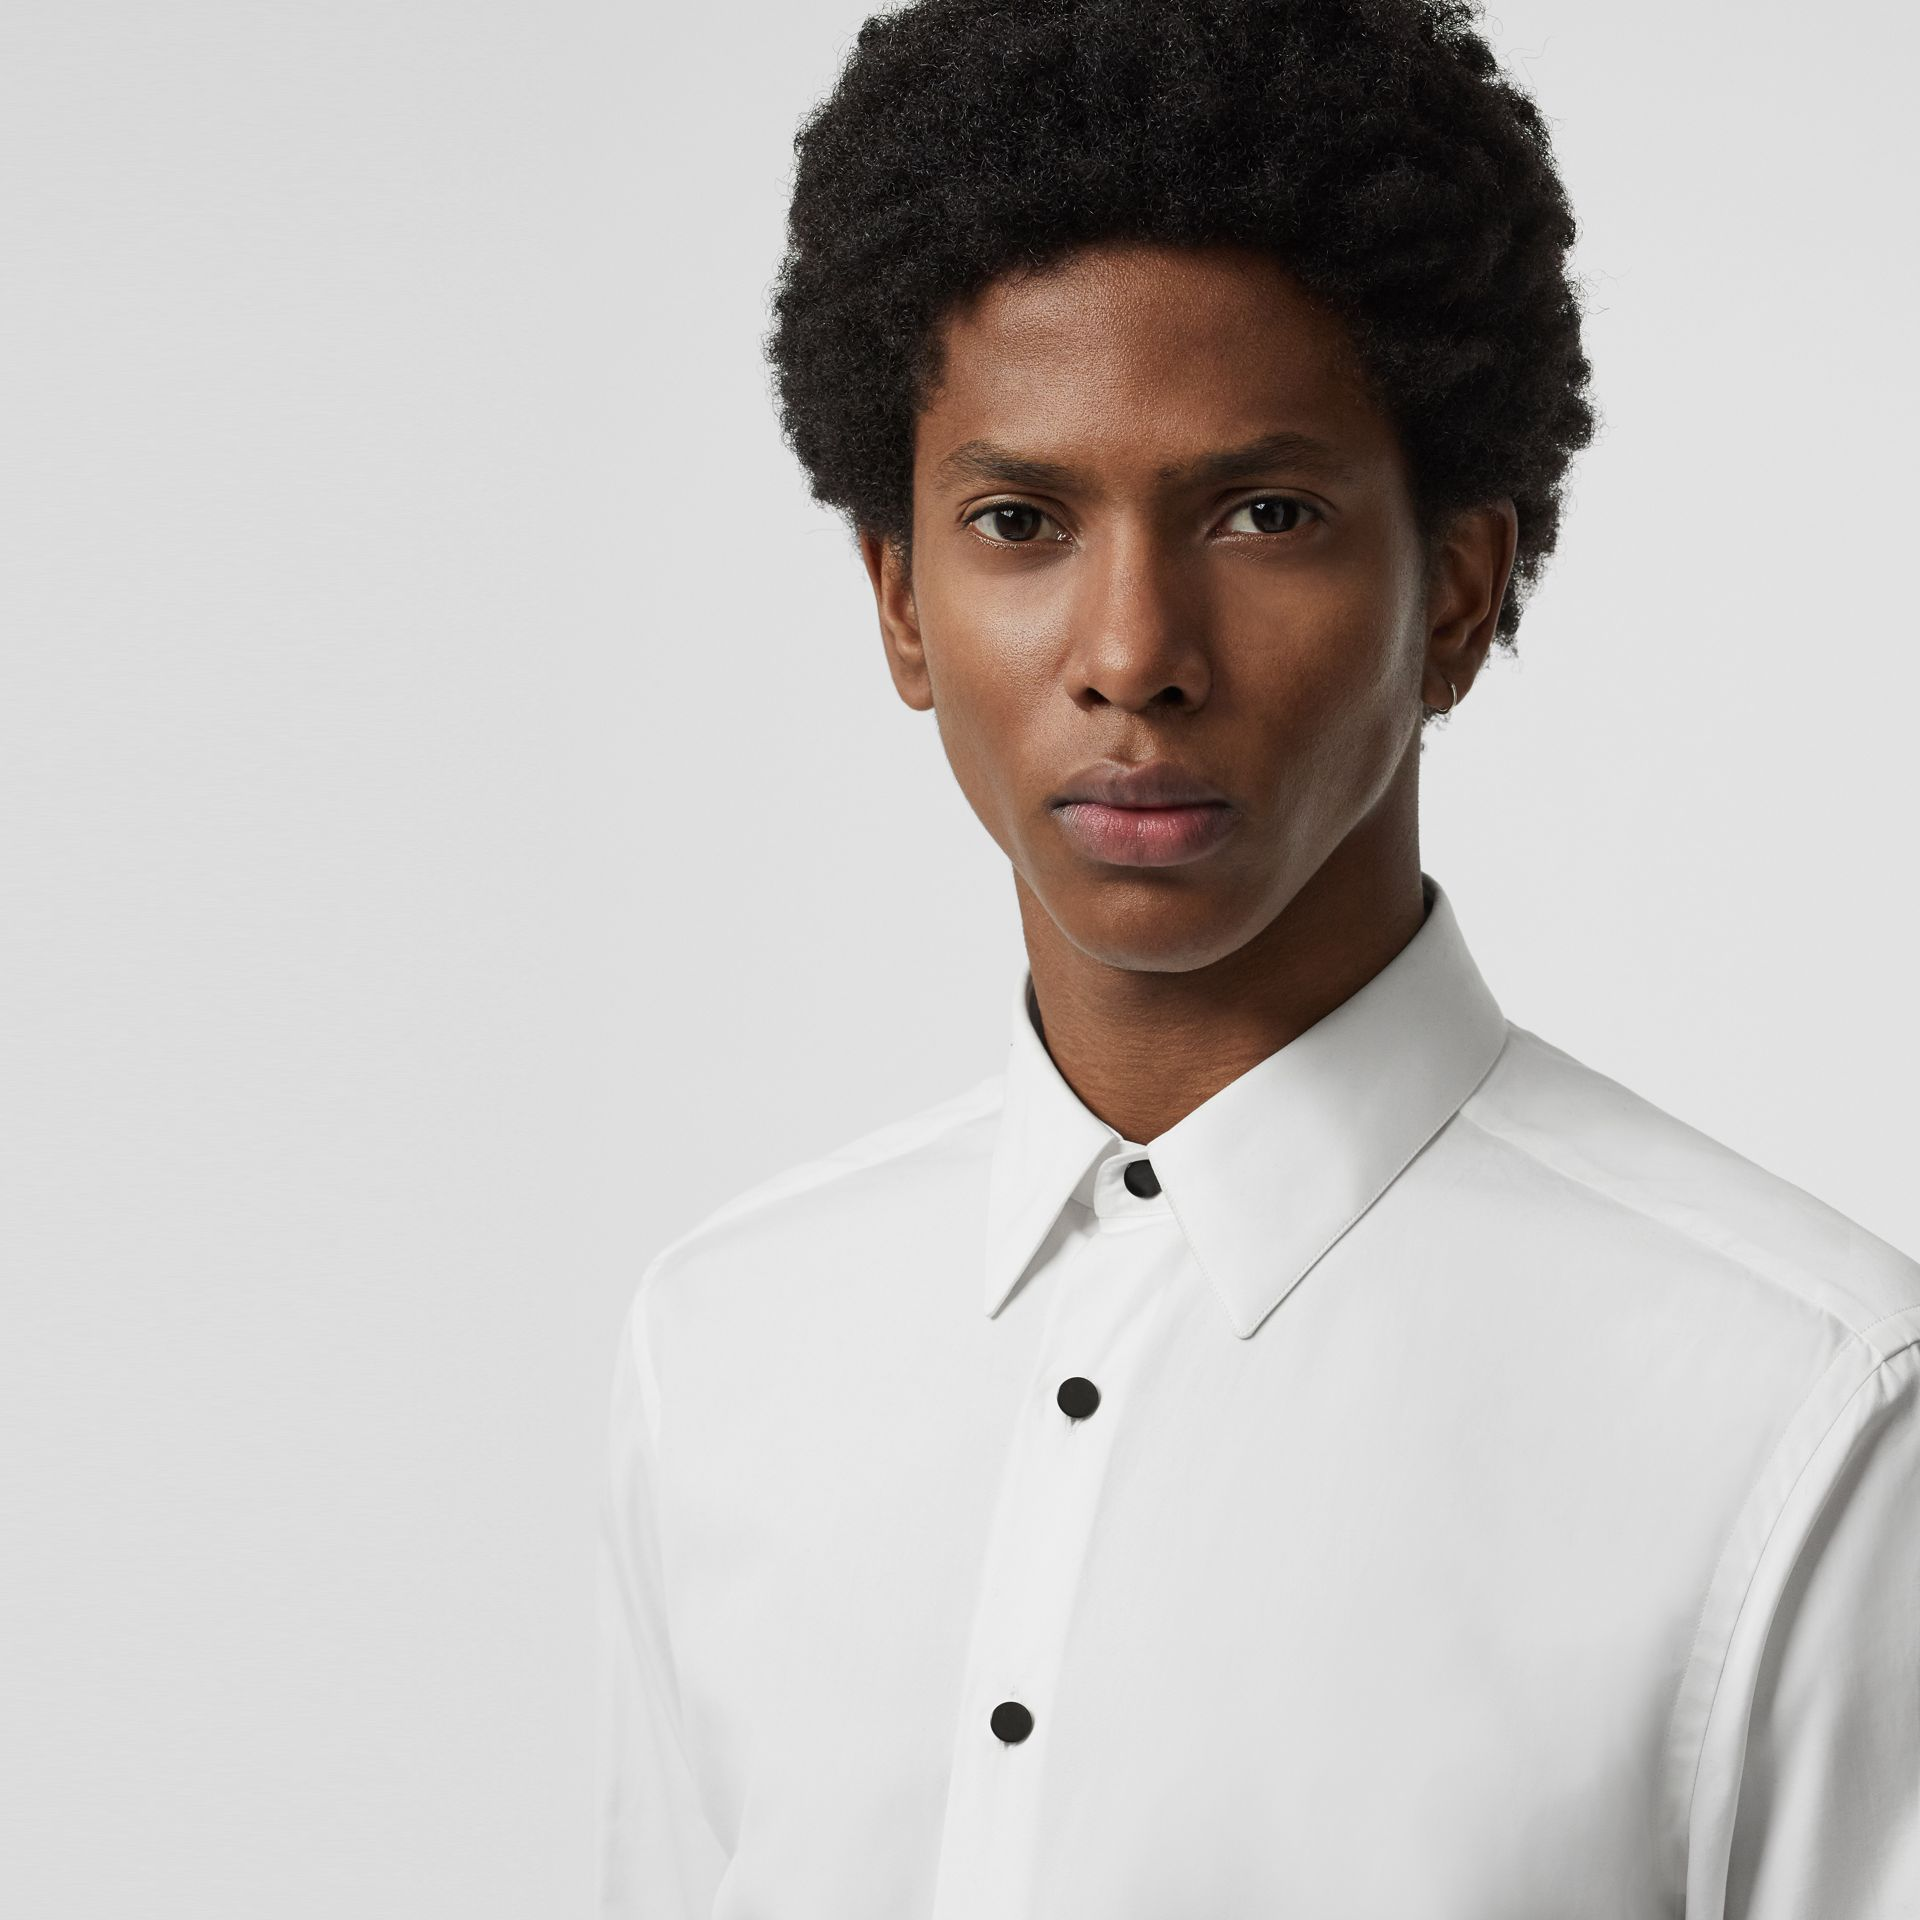 Classic Fit Cotton Poplin Dress Shirt in White - Men | Burberry Canada - gallery image 1